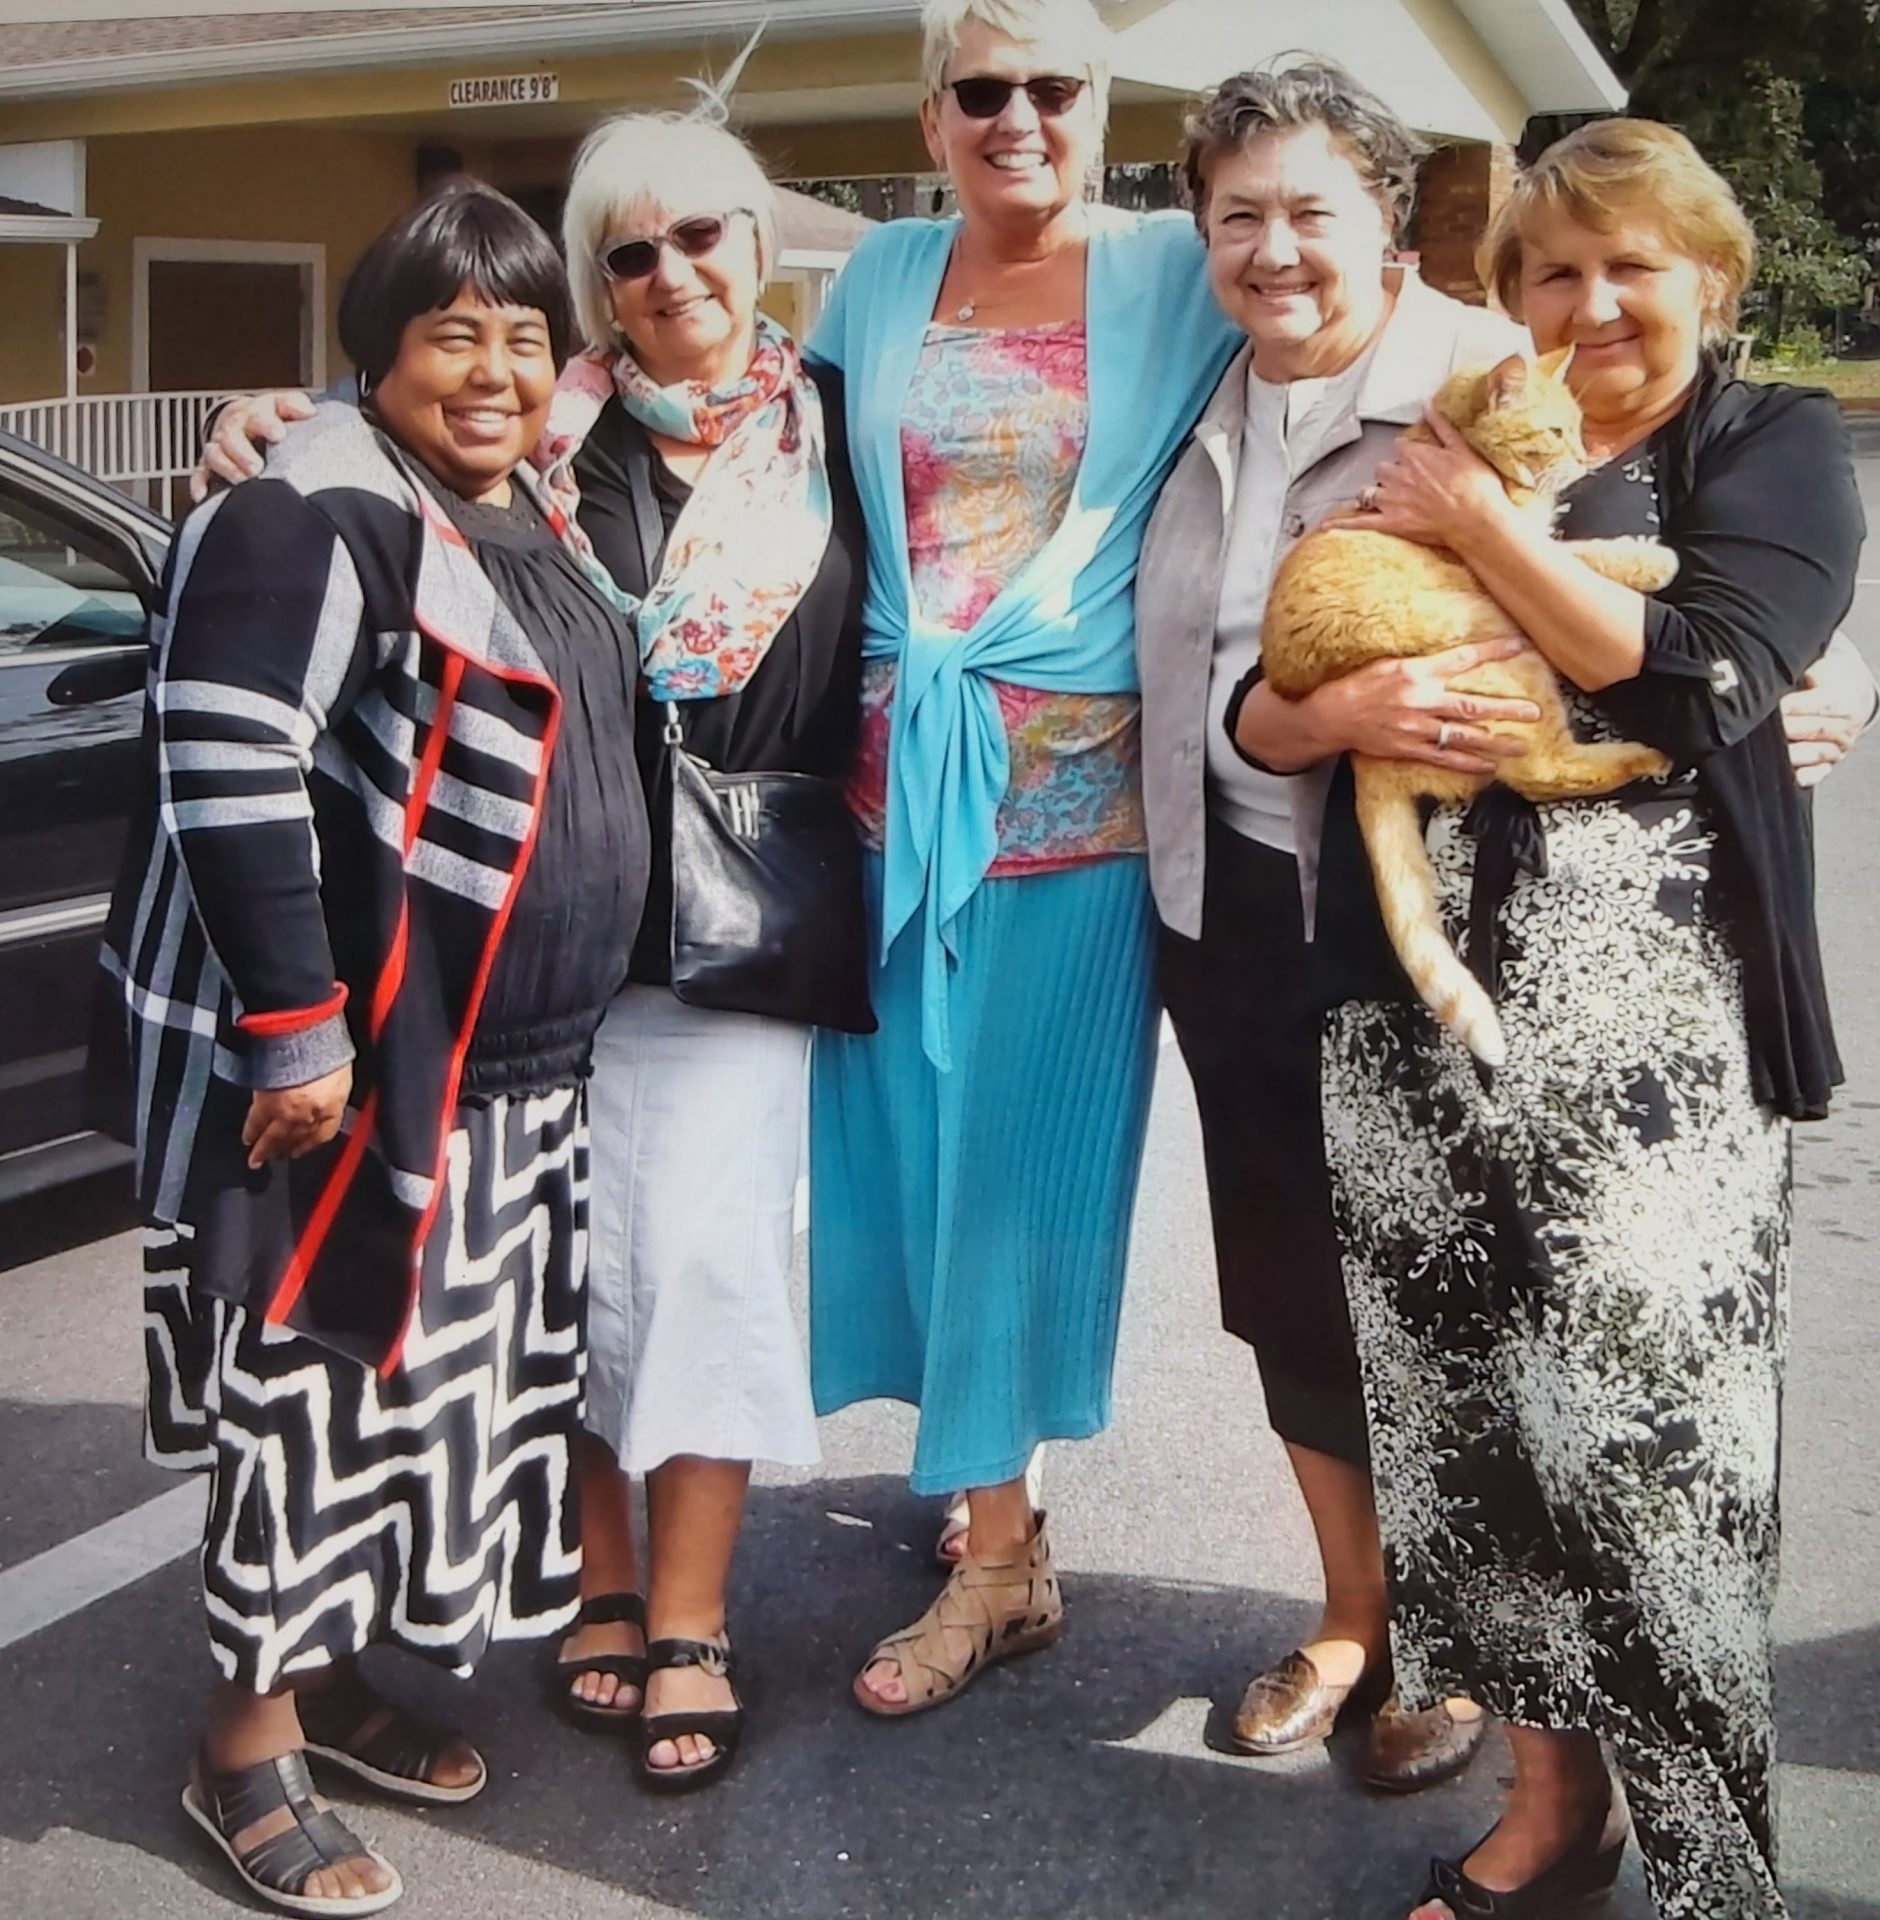 """Prov. 18:24b  <br /> """"but there is a friend (Shelia) who sticks closer than a brother"""". We will remember  Shelia  for her love and  acts of loving kindness. Because of Shelia's kindness to our friend Krystina we also had the priviledge and  benefit  of knowing Shelia too.  Our hearts are saddened that we won't see her beautiful smile or feel her warm hugs for a while. But we know she is safe in Jehovah's memory and when she stands up again we hope to be there to welcome her back. Sending our love and deepest sympathy to Chris and Miranda and all of  their  family, Kassandra and her family. Shelia is deeply missed by your friends in Canada xo"""